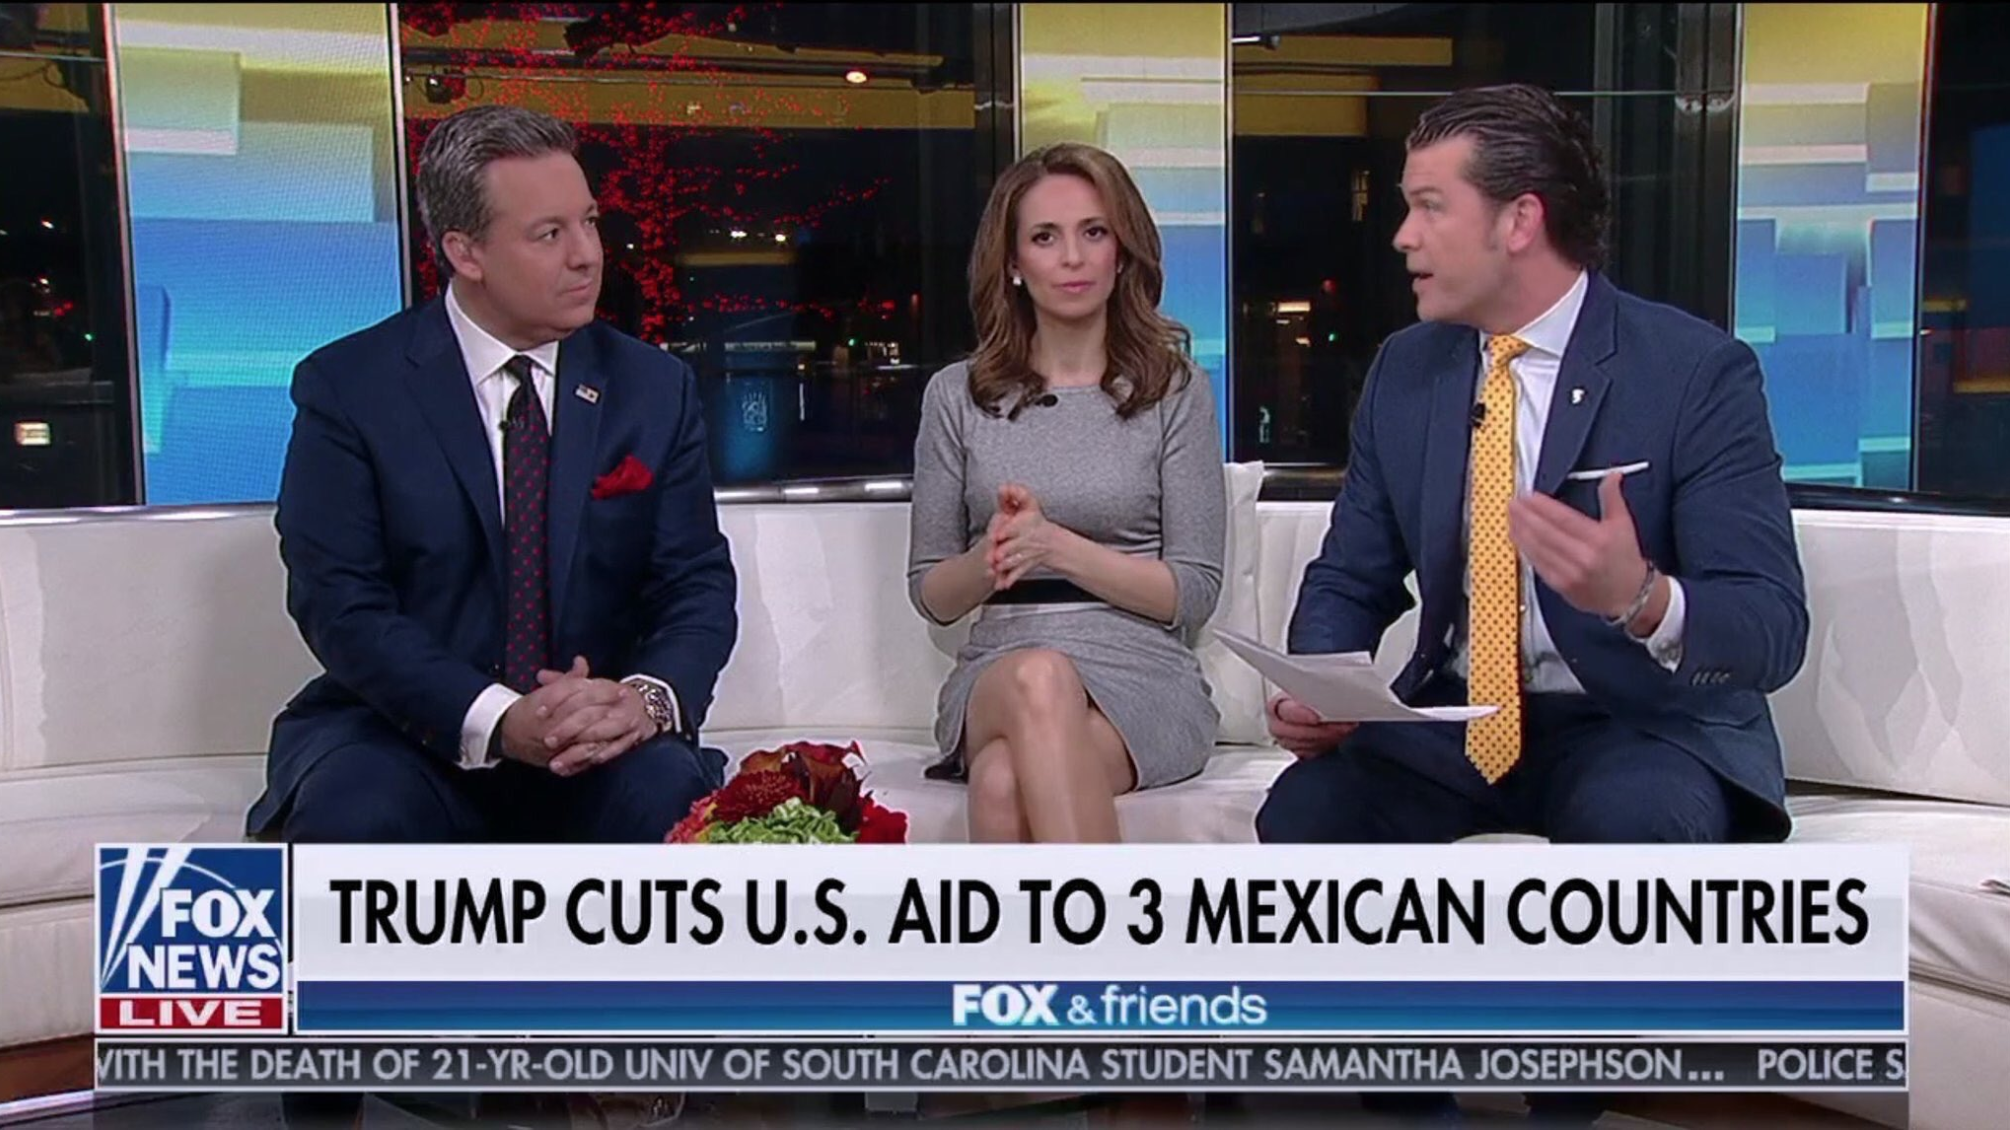 """'Fox & Friends' Ridiculed After Describing Central American Nations as """"3 Mexican Countries"""""""